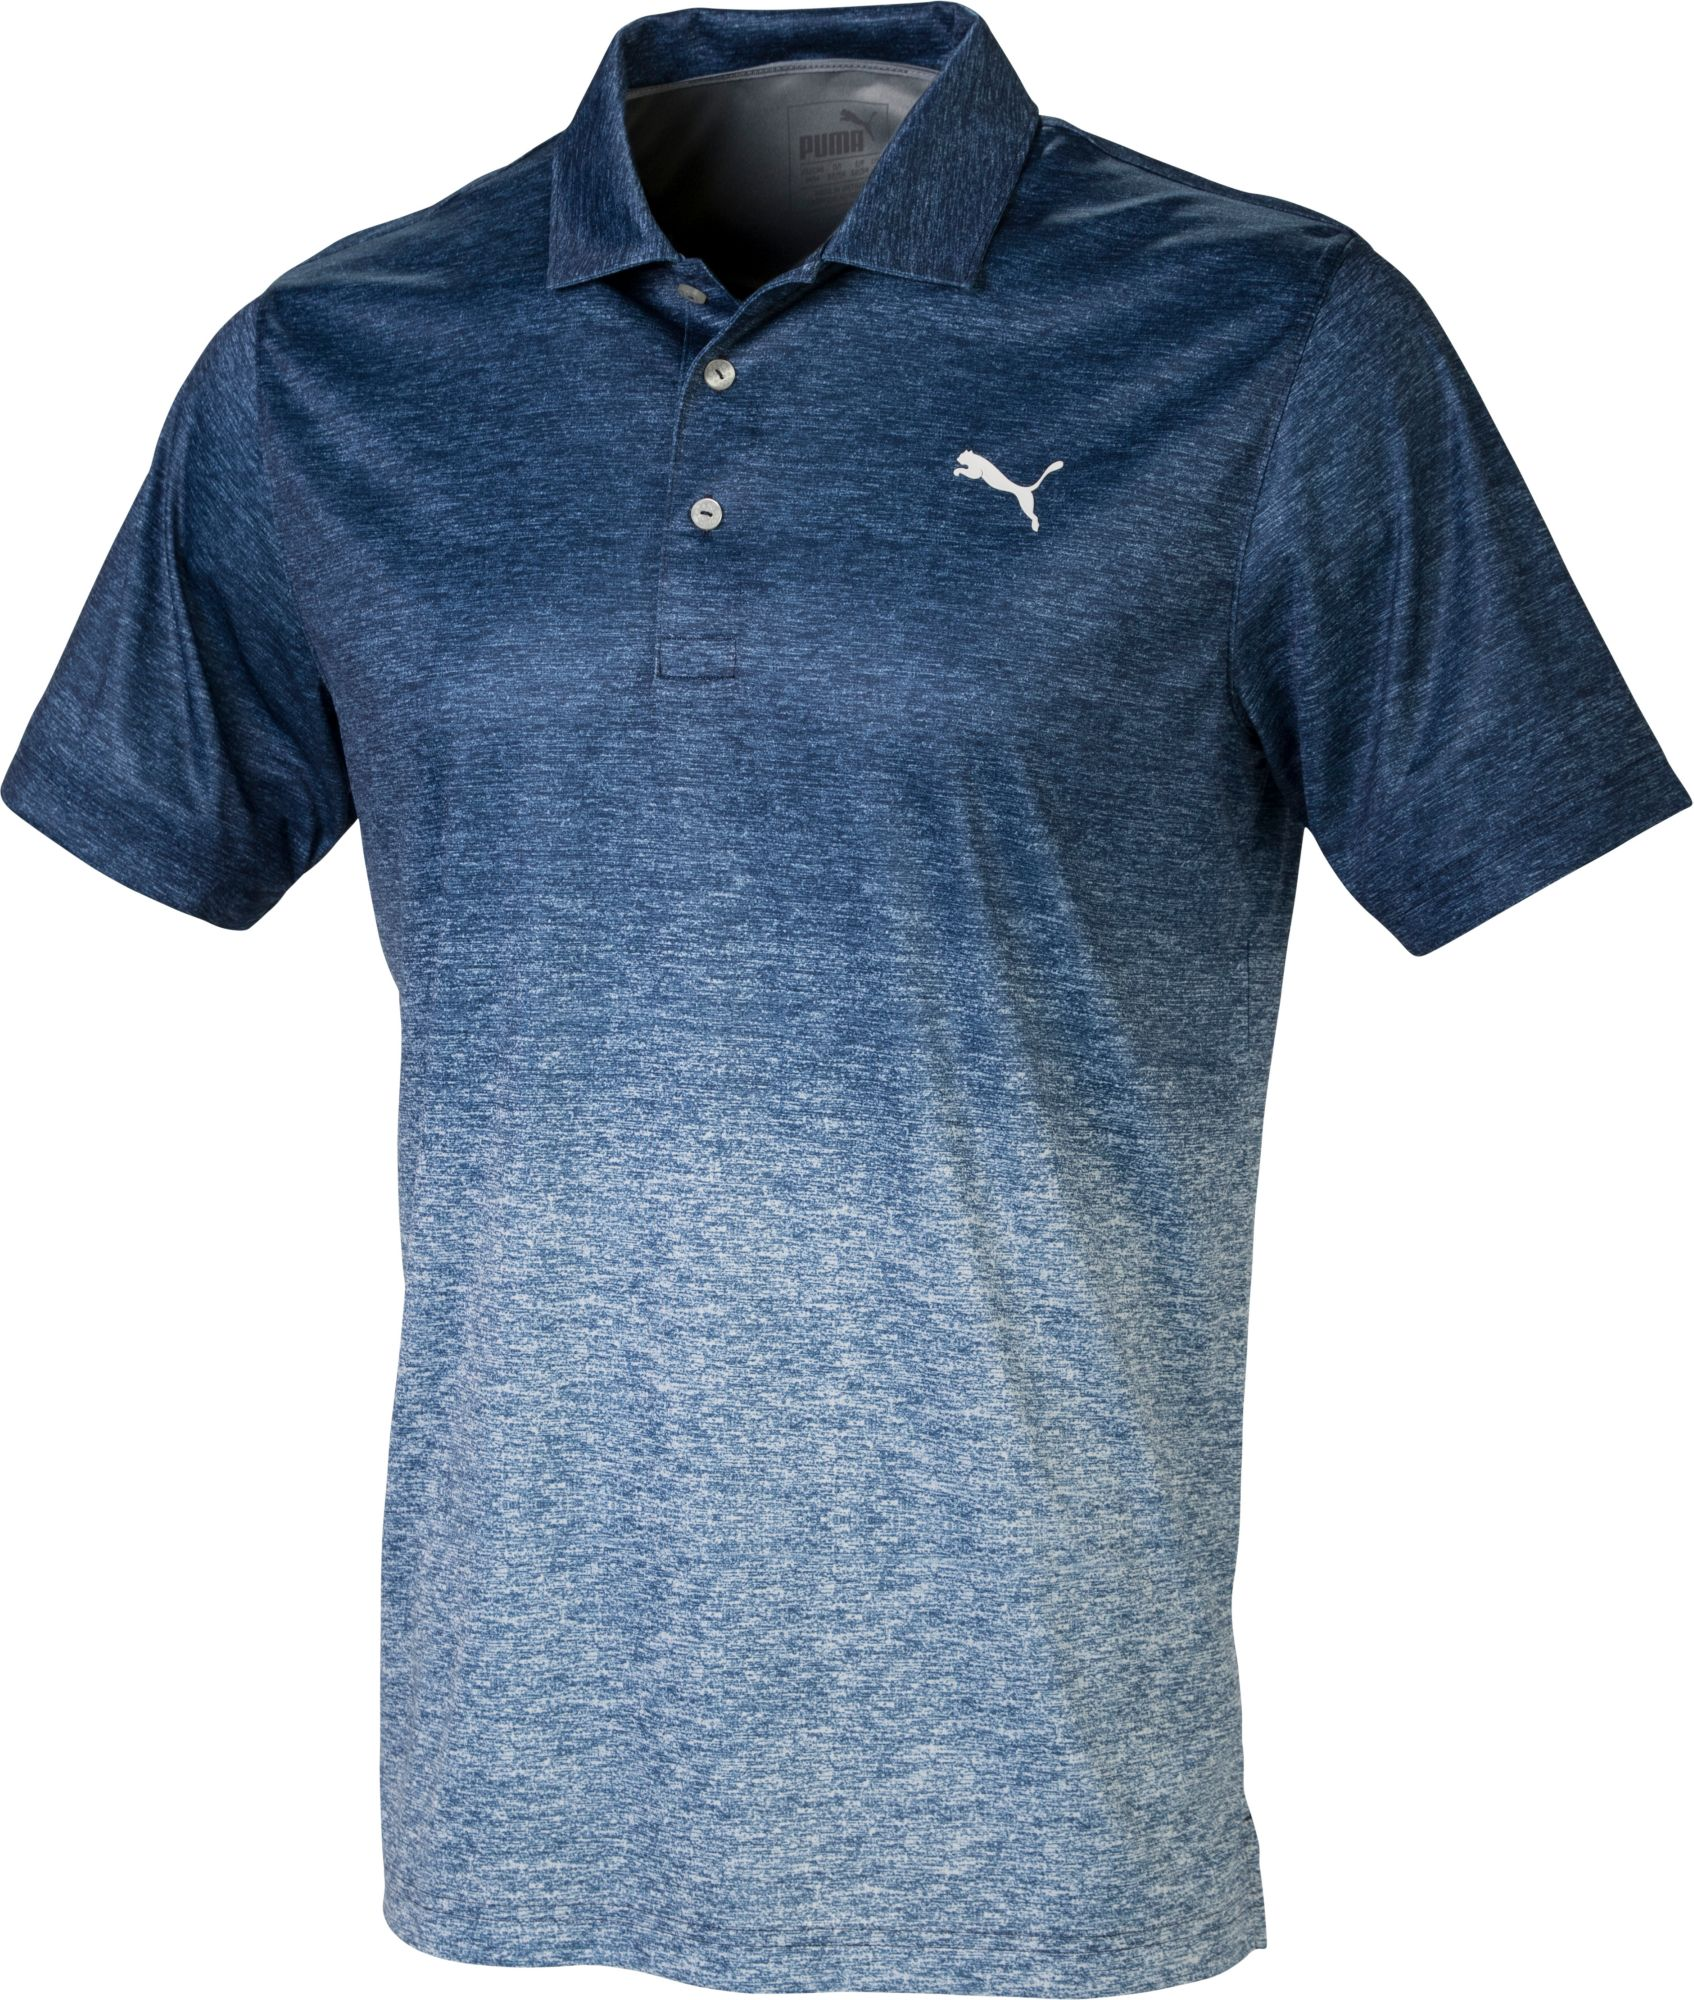 6aaca6b0 Mens Golf Polo T Shirts - Cotswold Hire